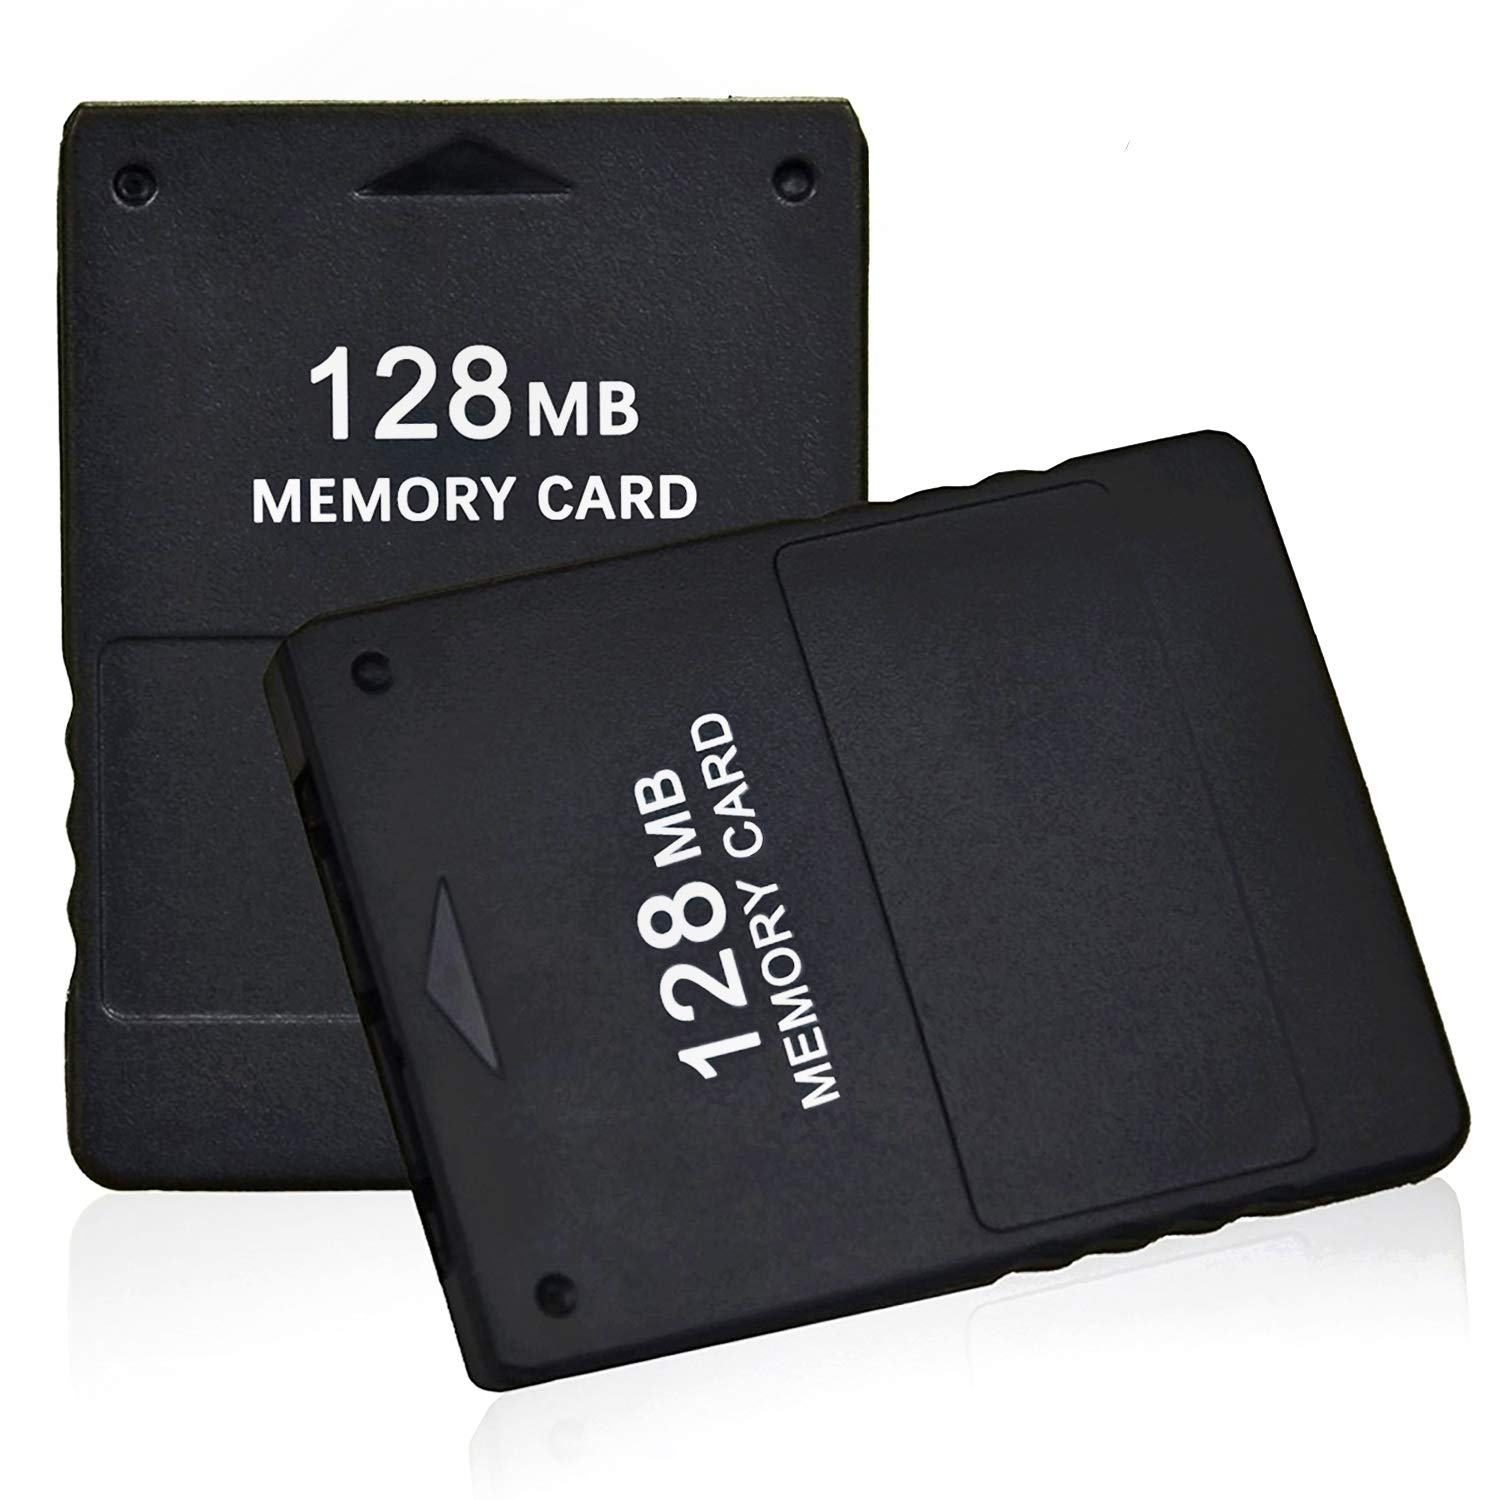 TPFOON 2pcs Pack 128MB High Speed Game Memory Card Compatible with Sony Playstation 2 PS2 (Black)